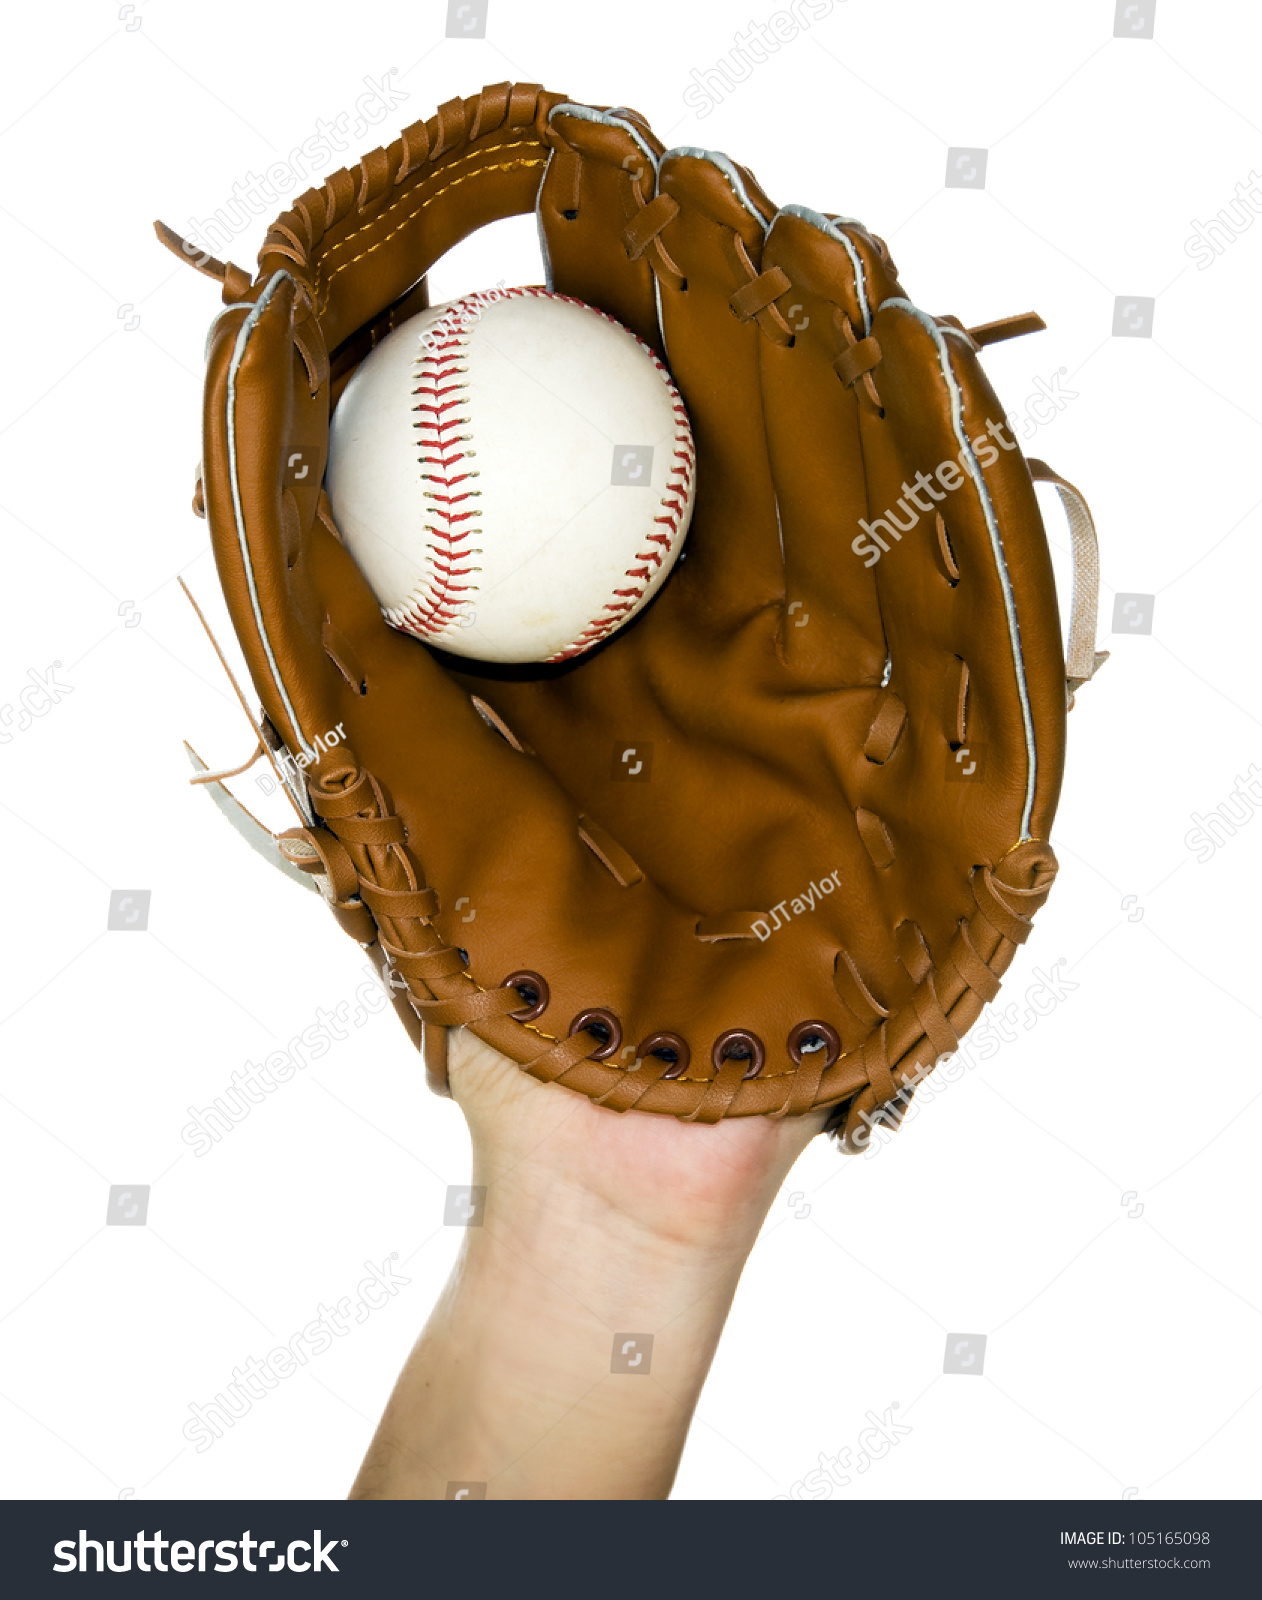 person catching baseball in leather baseball glove isolated in white #105165098